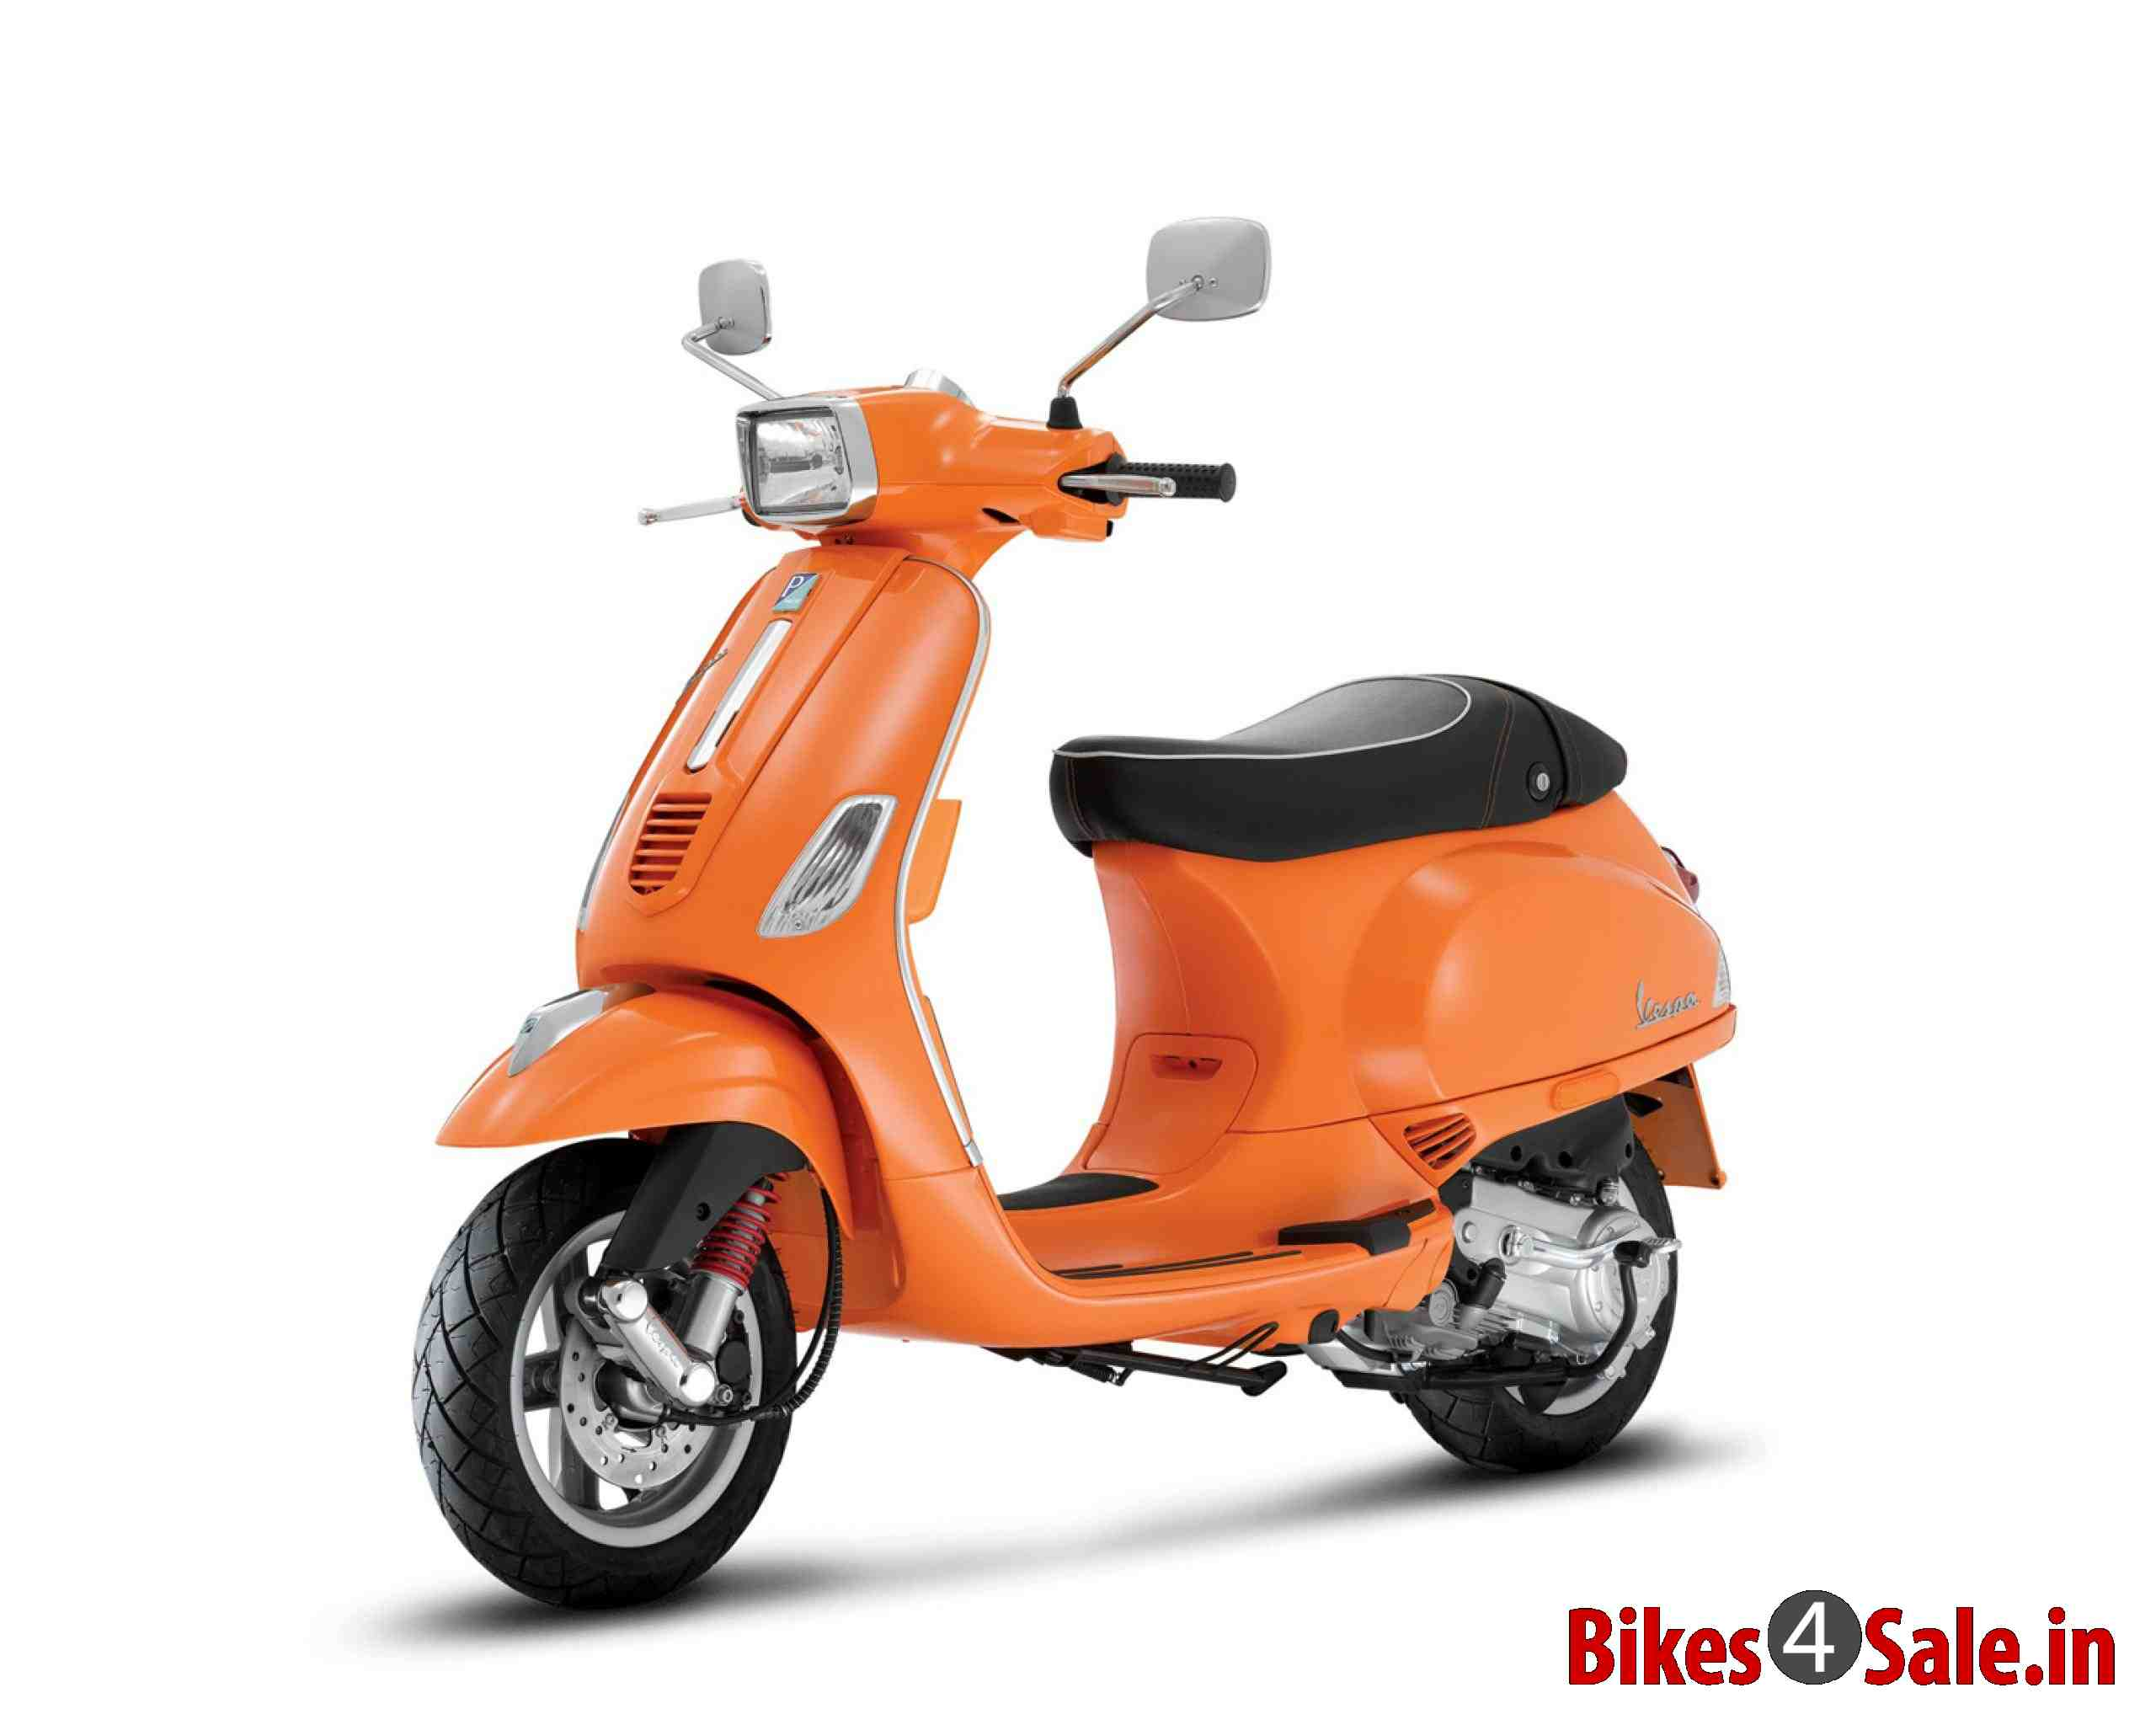 Electric Bikes For Sale >> Vespa S 125 price, specs, mileage, colours, photos and reviews - Bikes4Sale